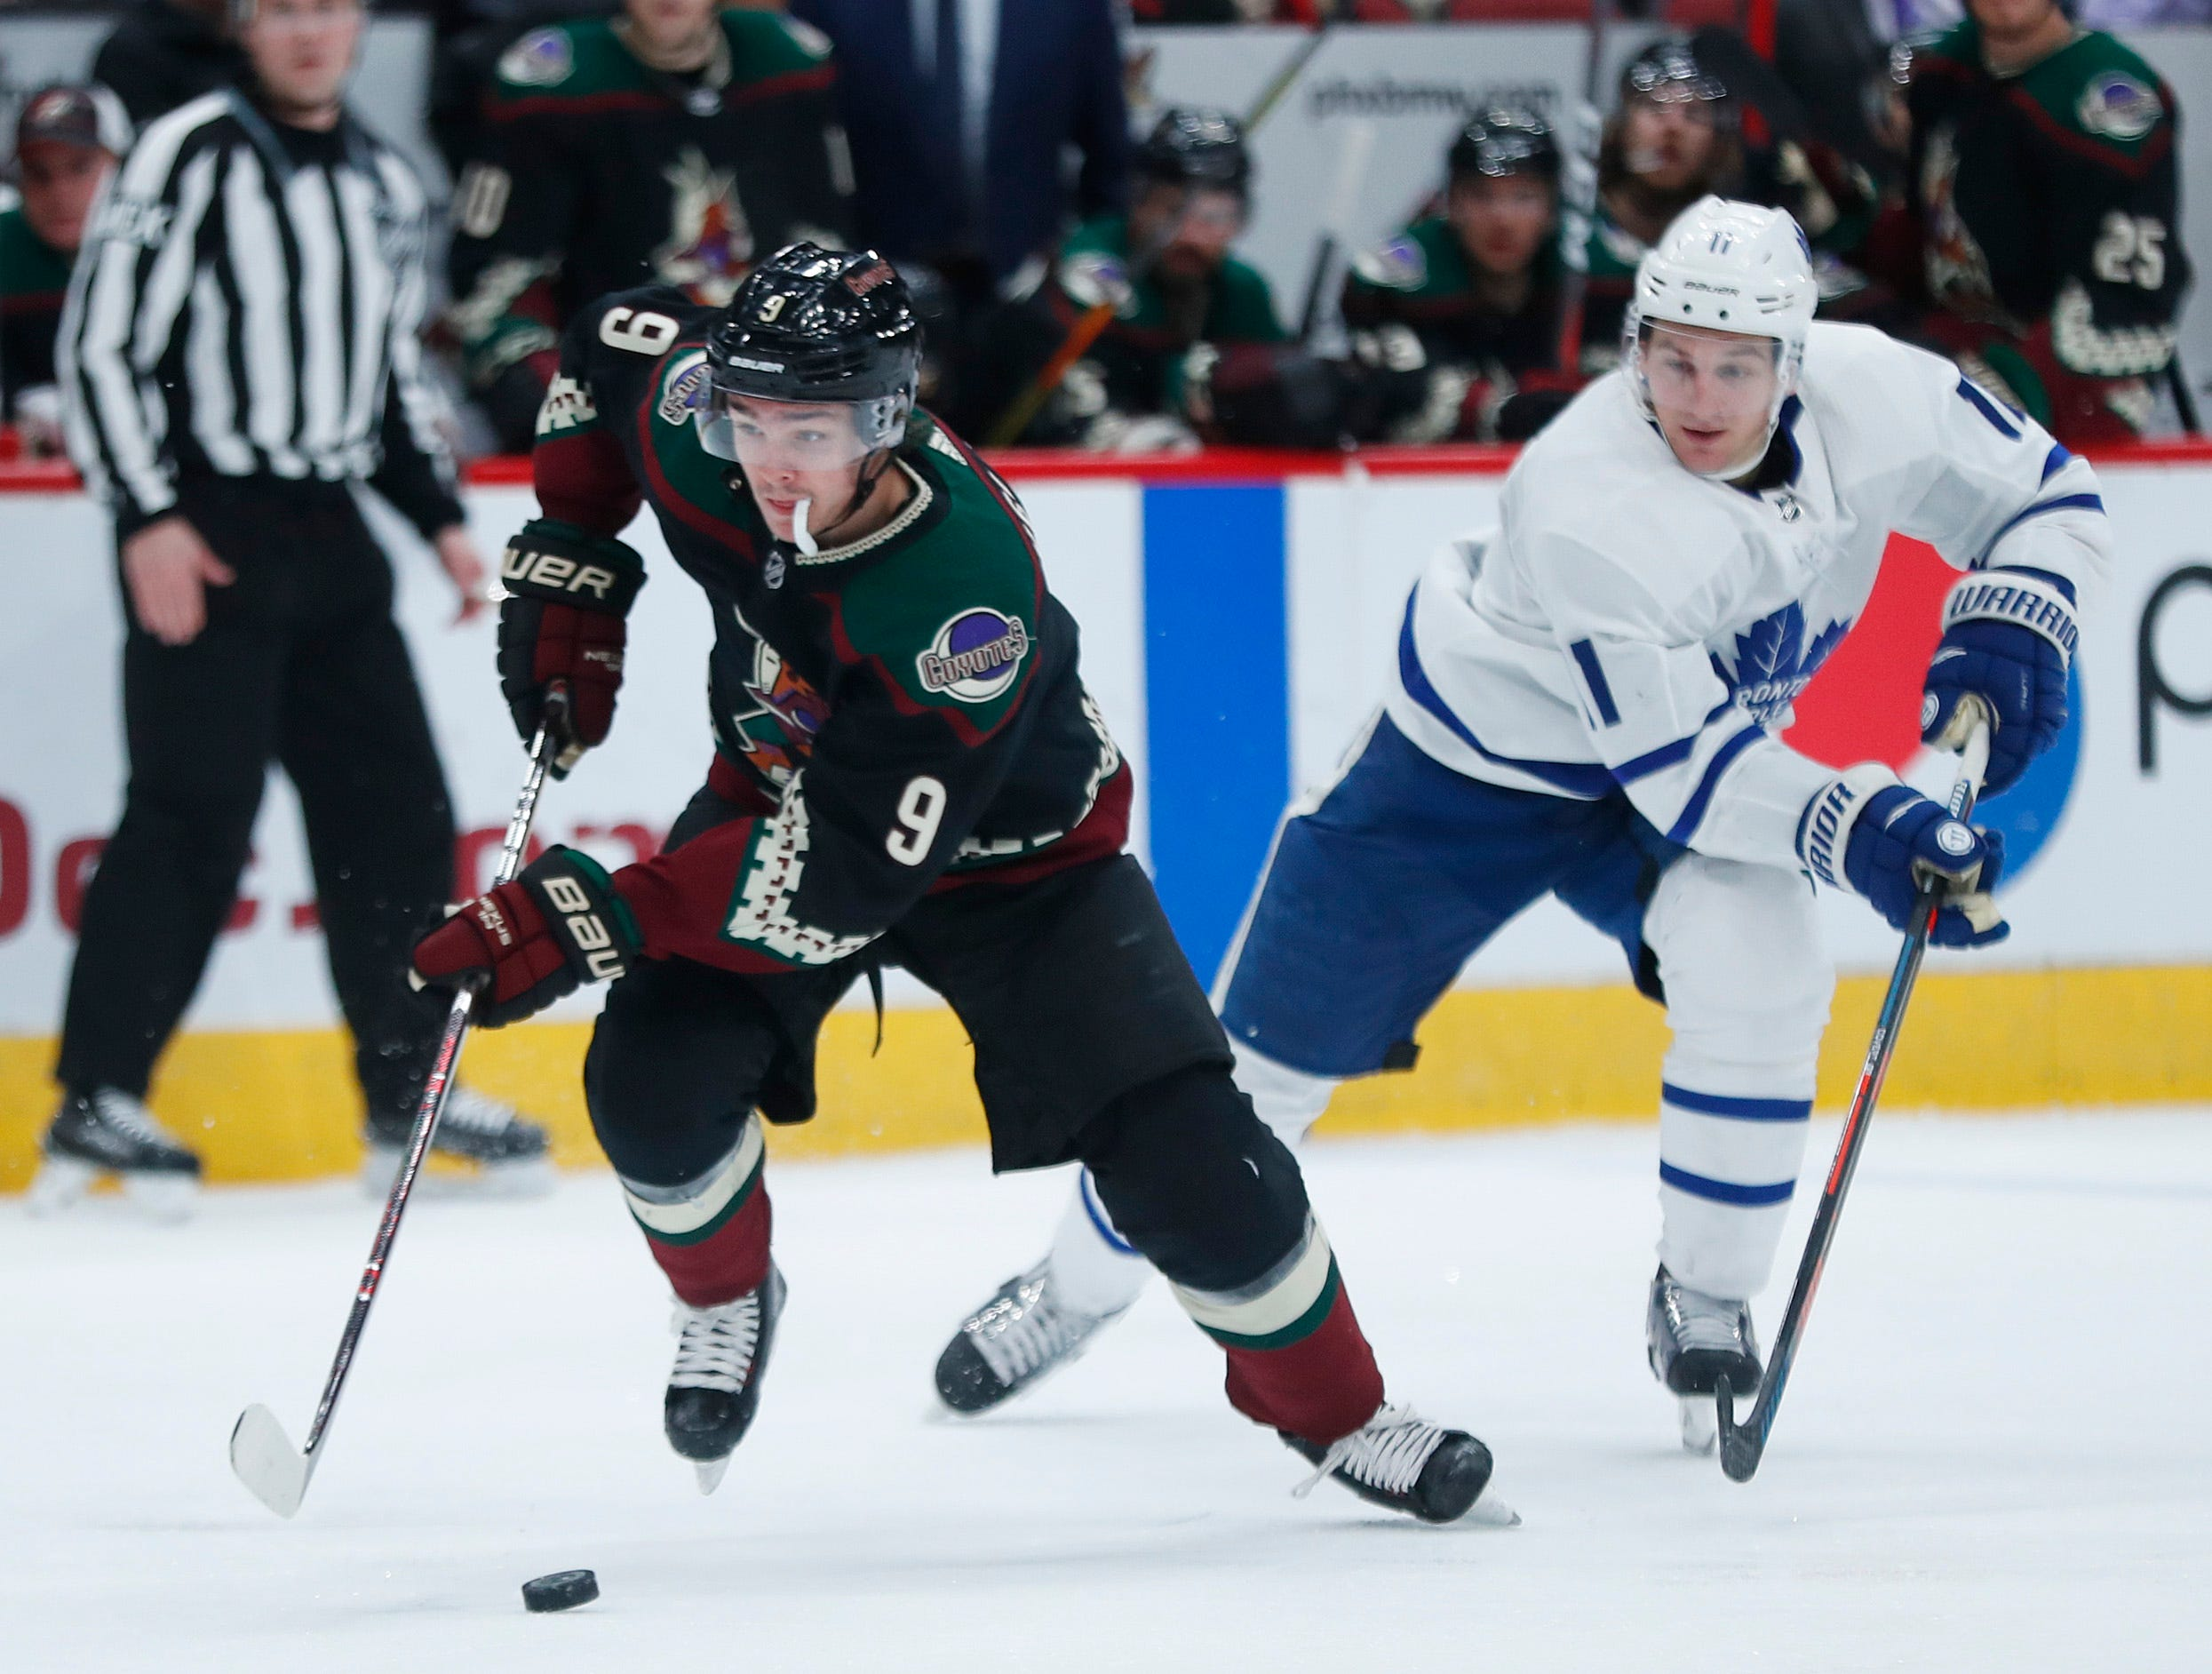 Arizona Coyotes believe Clayton Keller's long-term contract extension is worth the risk